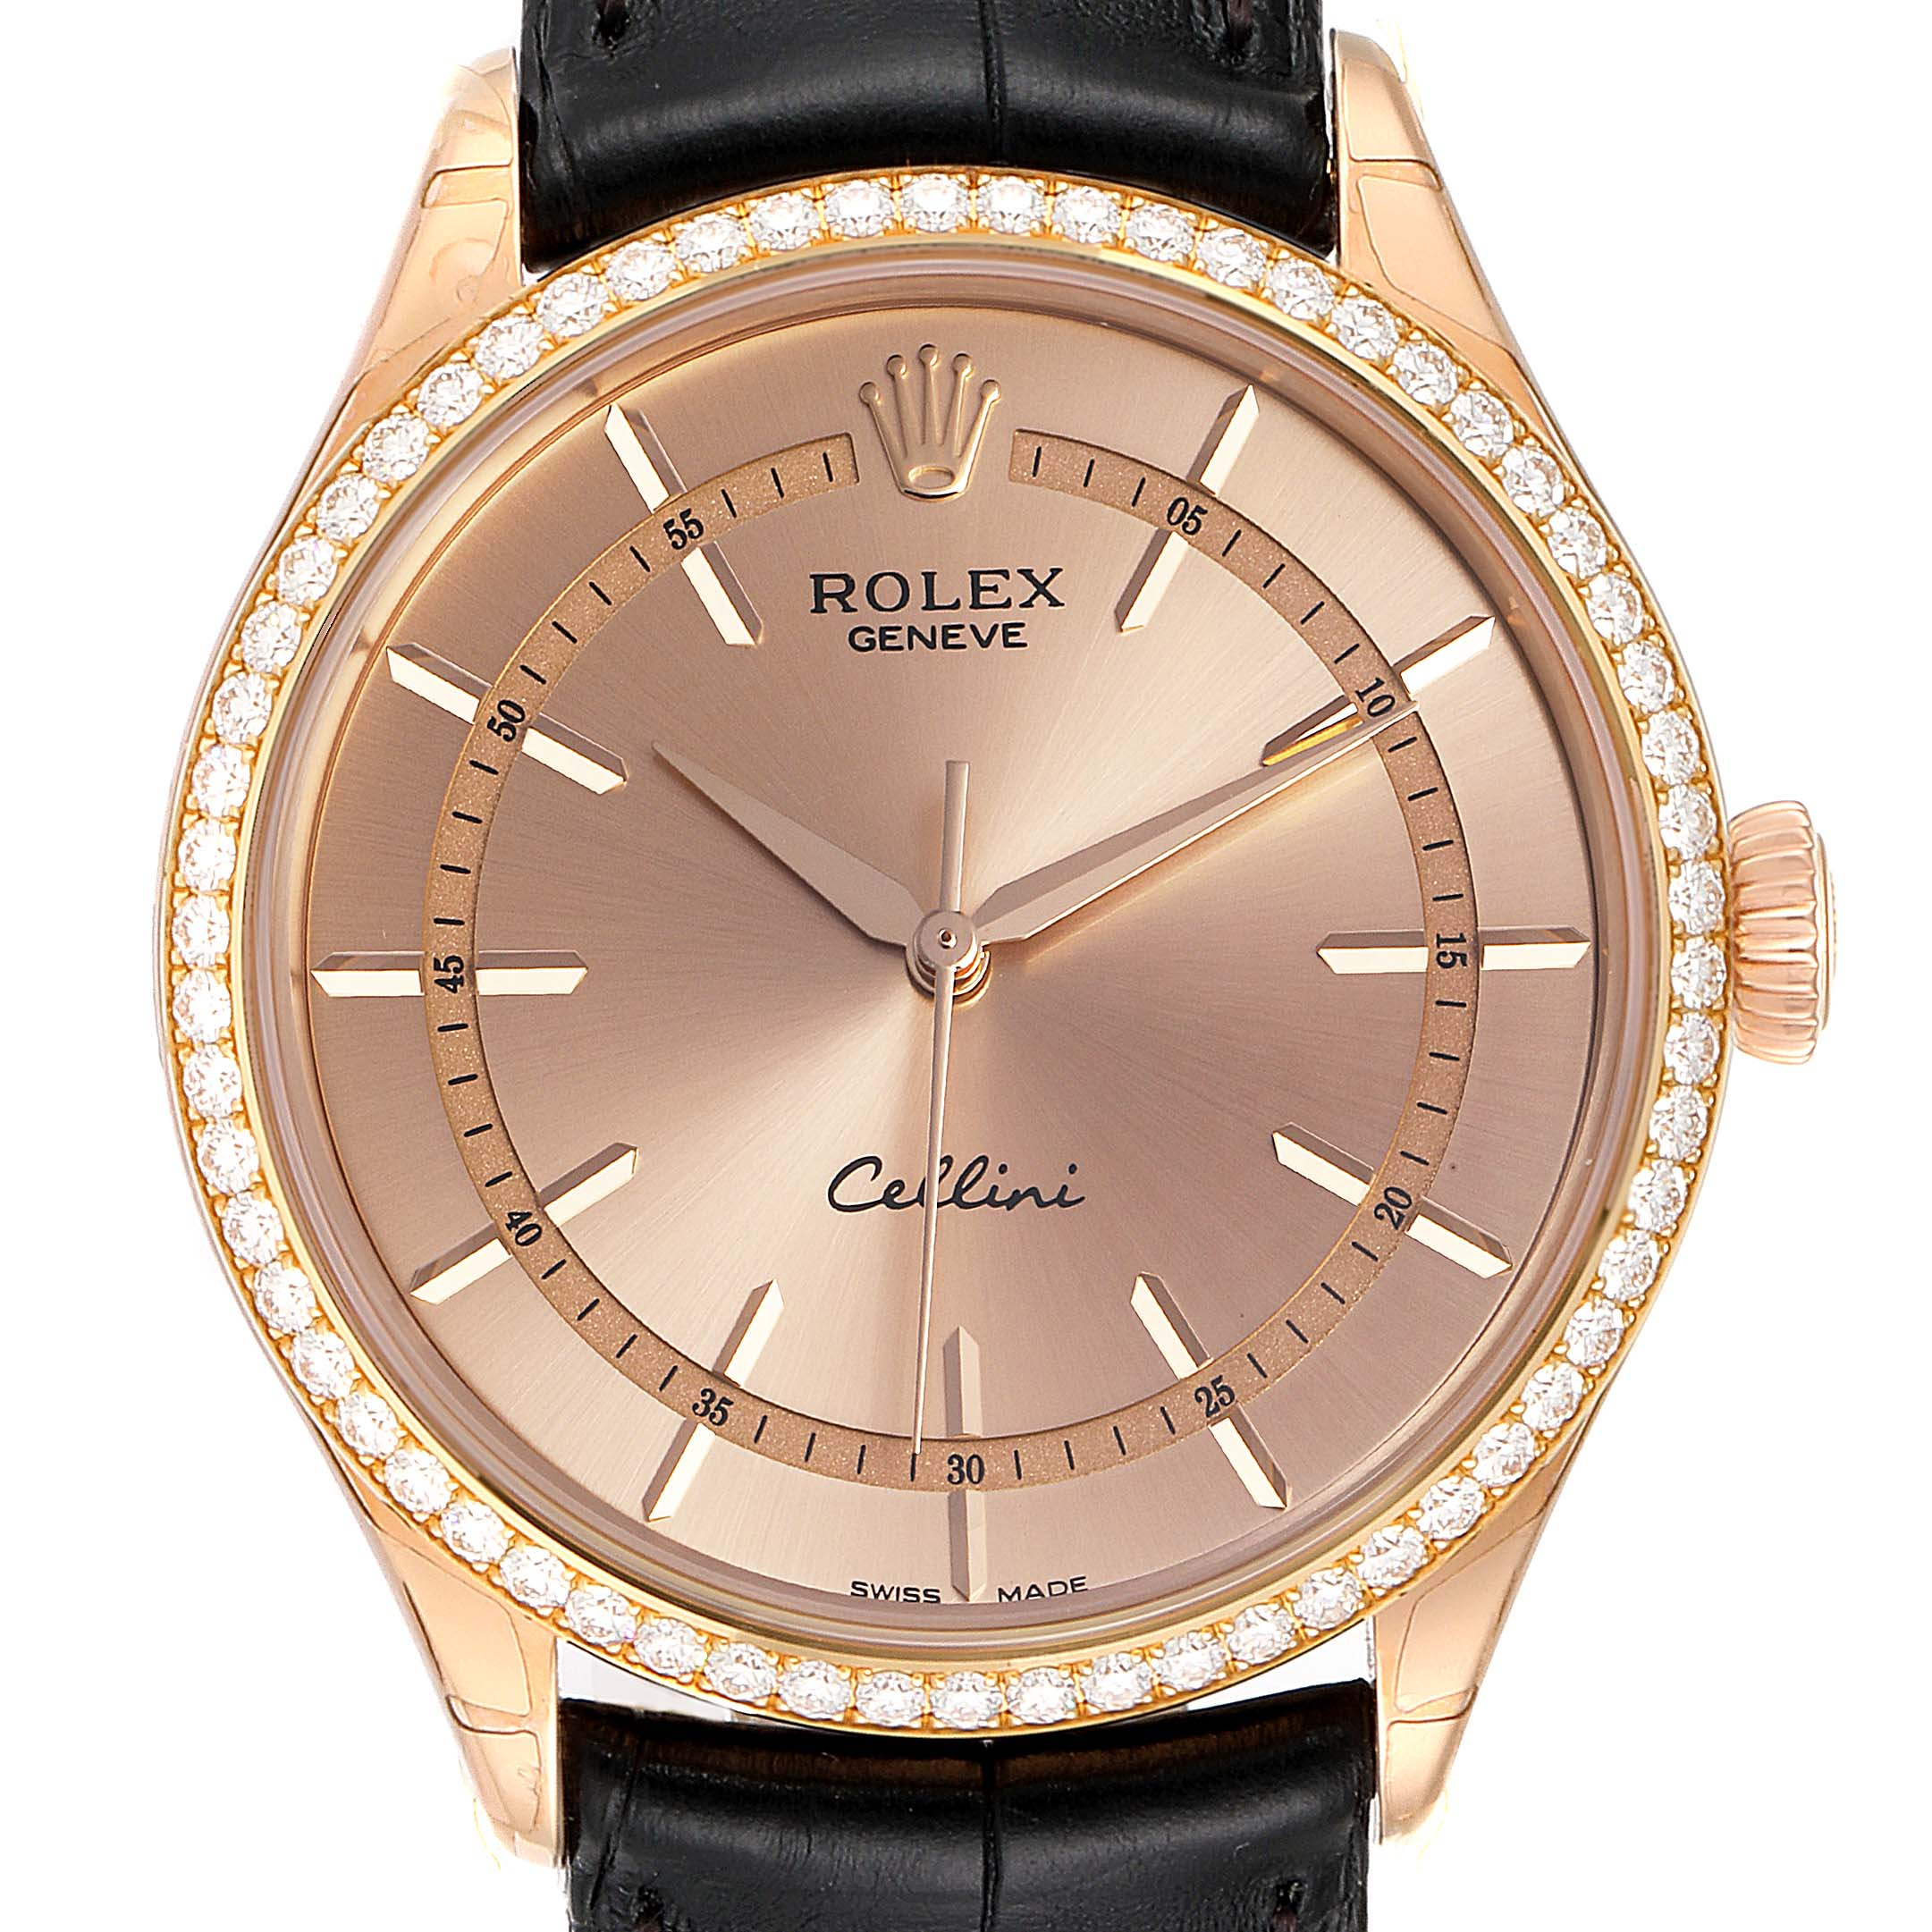 Photo of Rolex Cellini Everose Gold Automatic Diamond Mens Watch 50705 Unworn